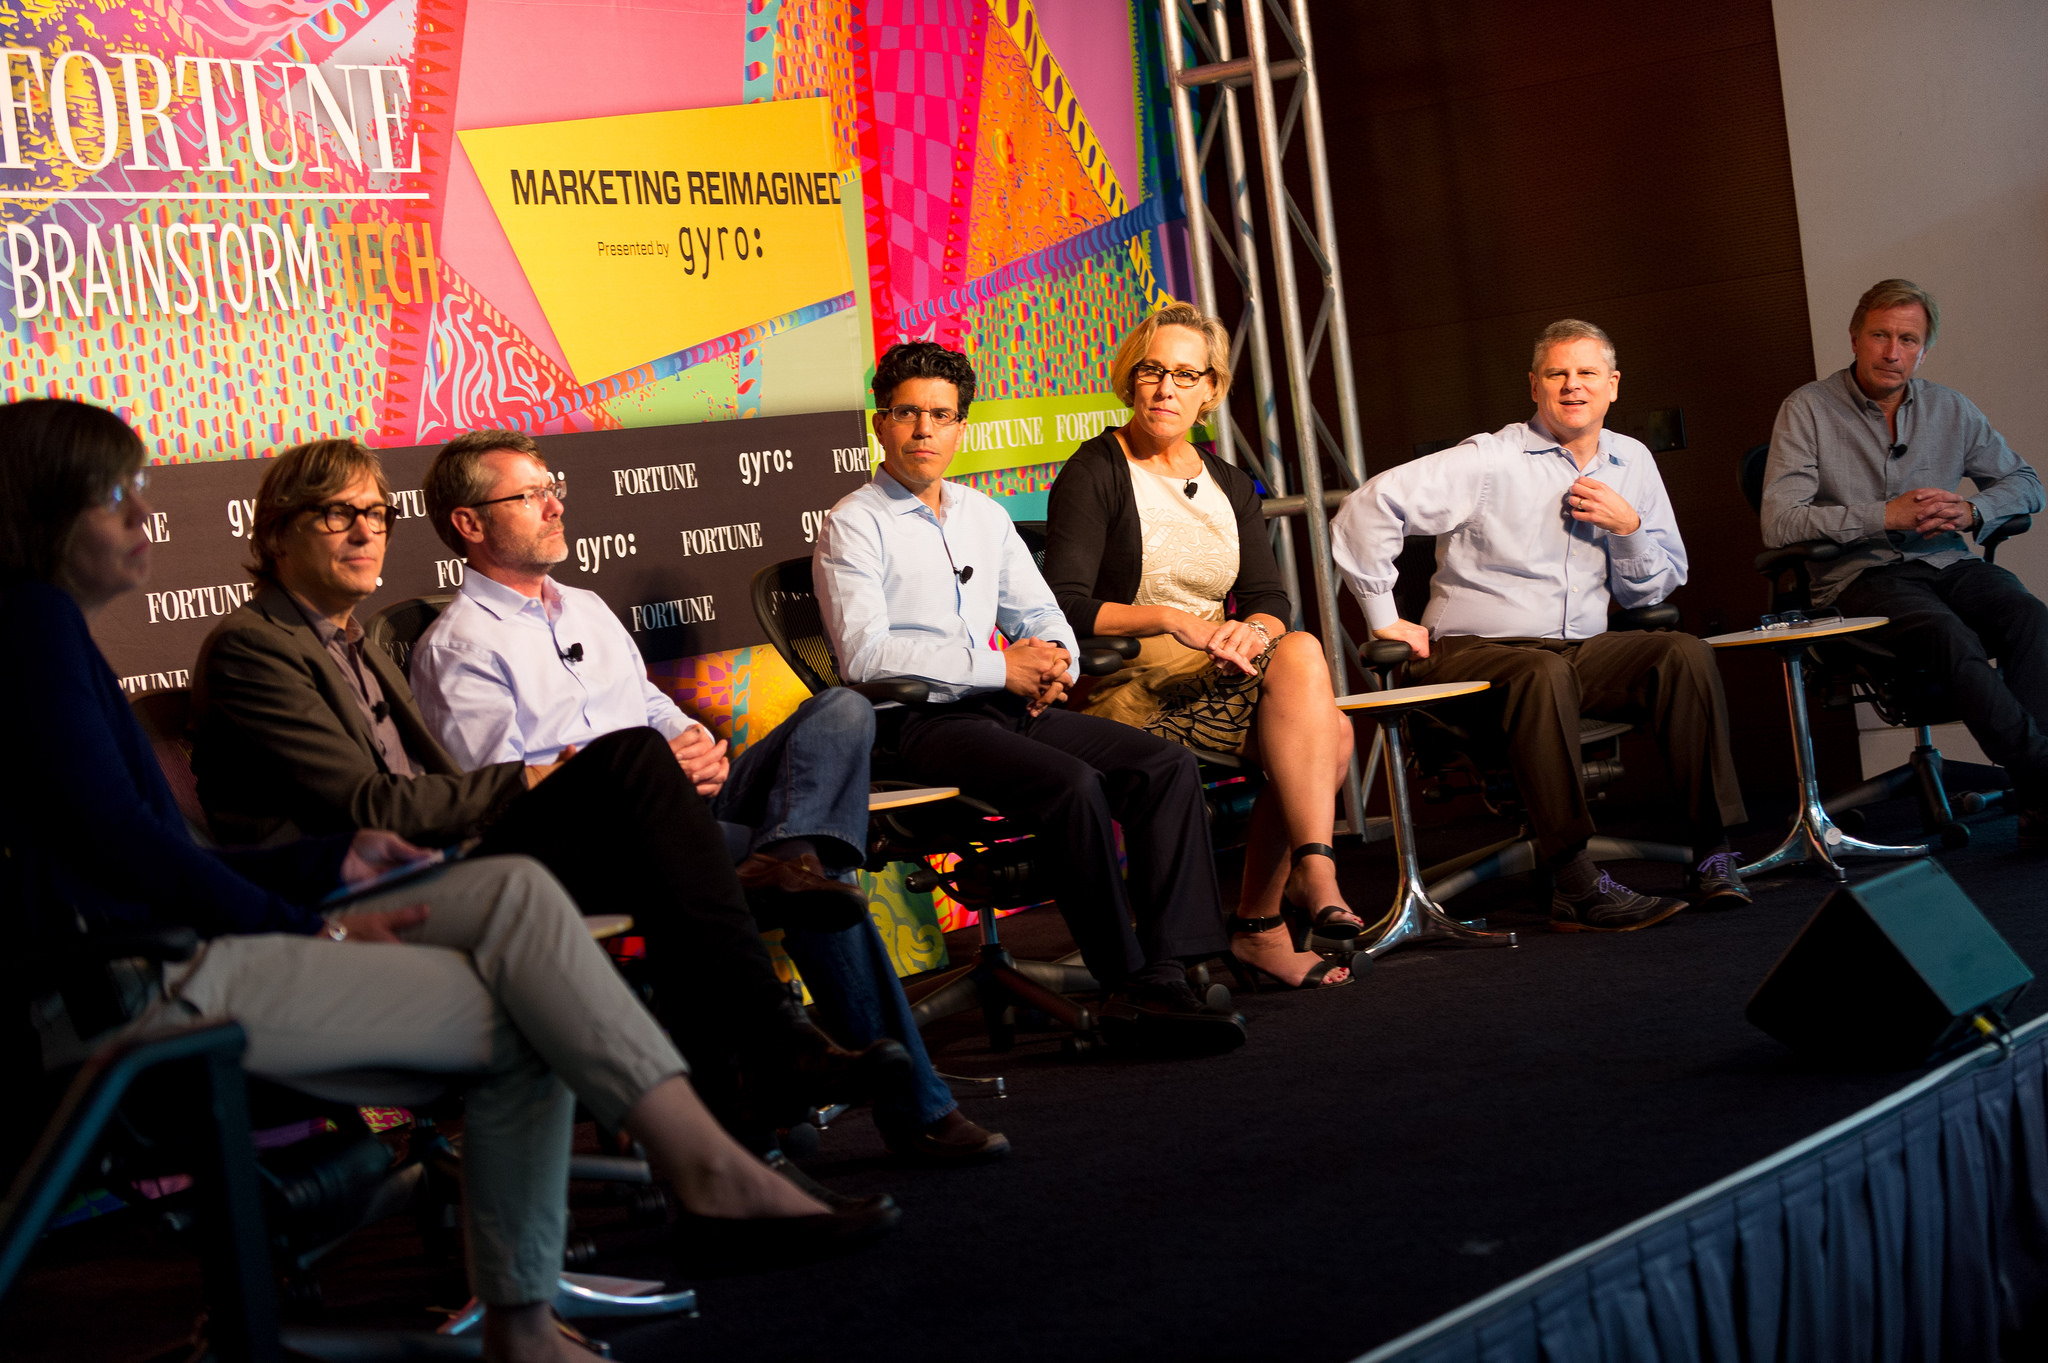 Left to right: Pattie Sellers, senior editor at large, Fortune; Christoph Becker, CEO, gyro; Bob Borchers, CMO, Dolby Laboratories; Gil Elbaz, CEO, Factual; Deanie Elsner, CMO, Kraft Foods; Phil Fernandez, CEO, Marketo; Marc Mathieu, SVP of Marketing, Unilever.